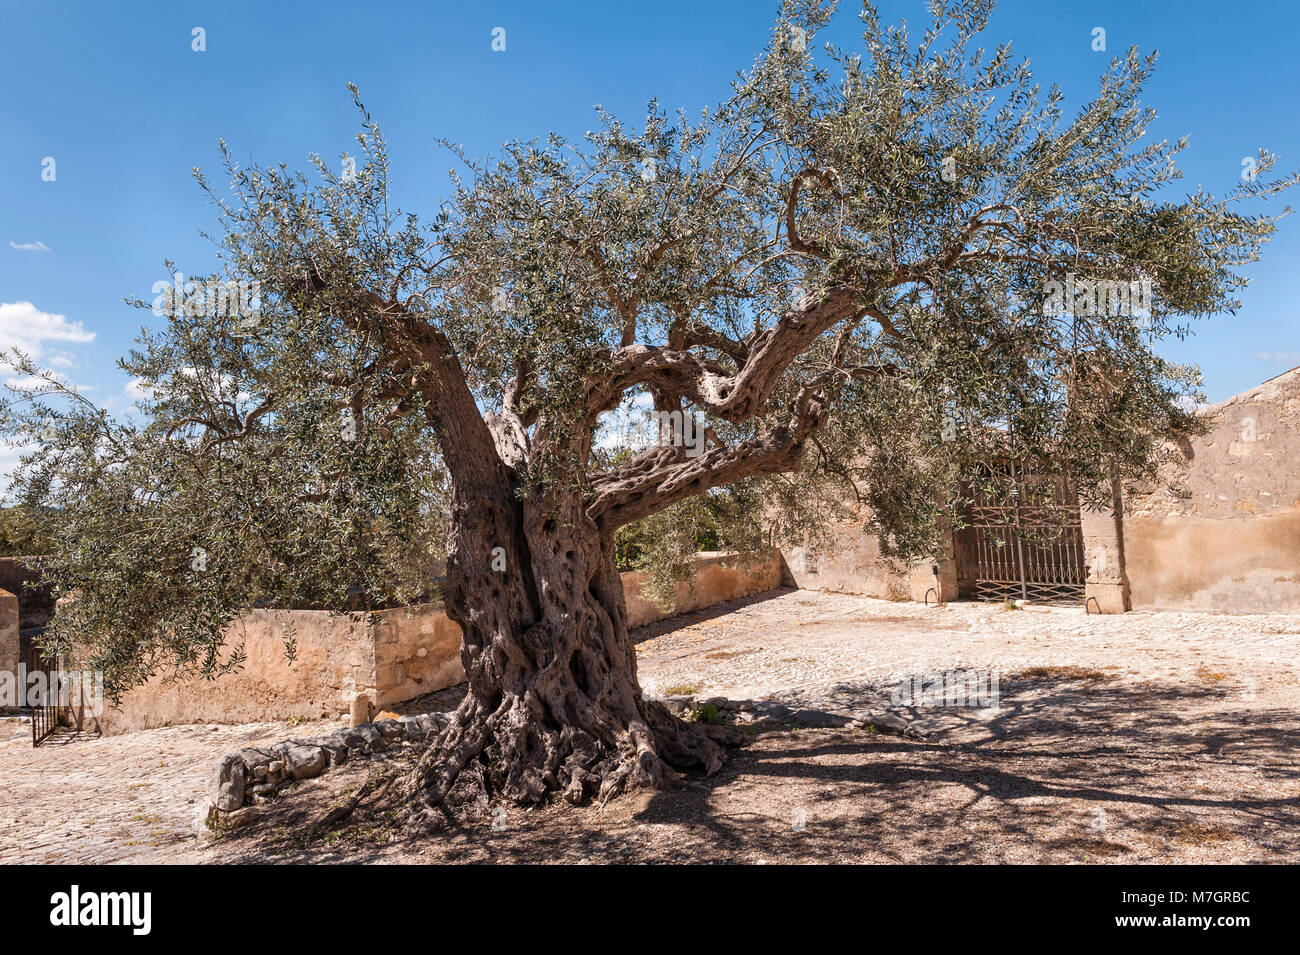 Chiaramonte Gulfi, Sicily, Italy. An ancient olive tree in the courtyard at Villa Fegotto (used as a location for - Stock Image